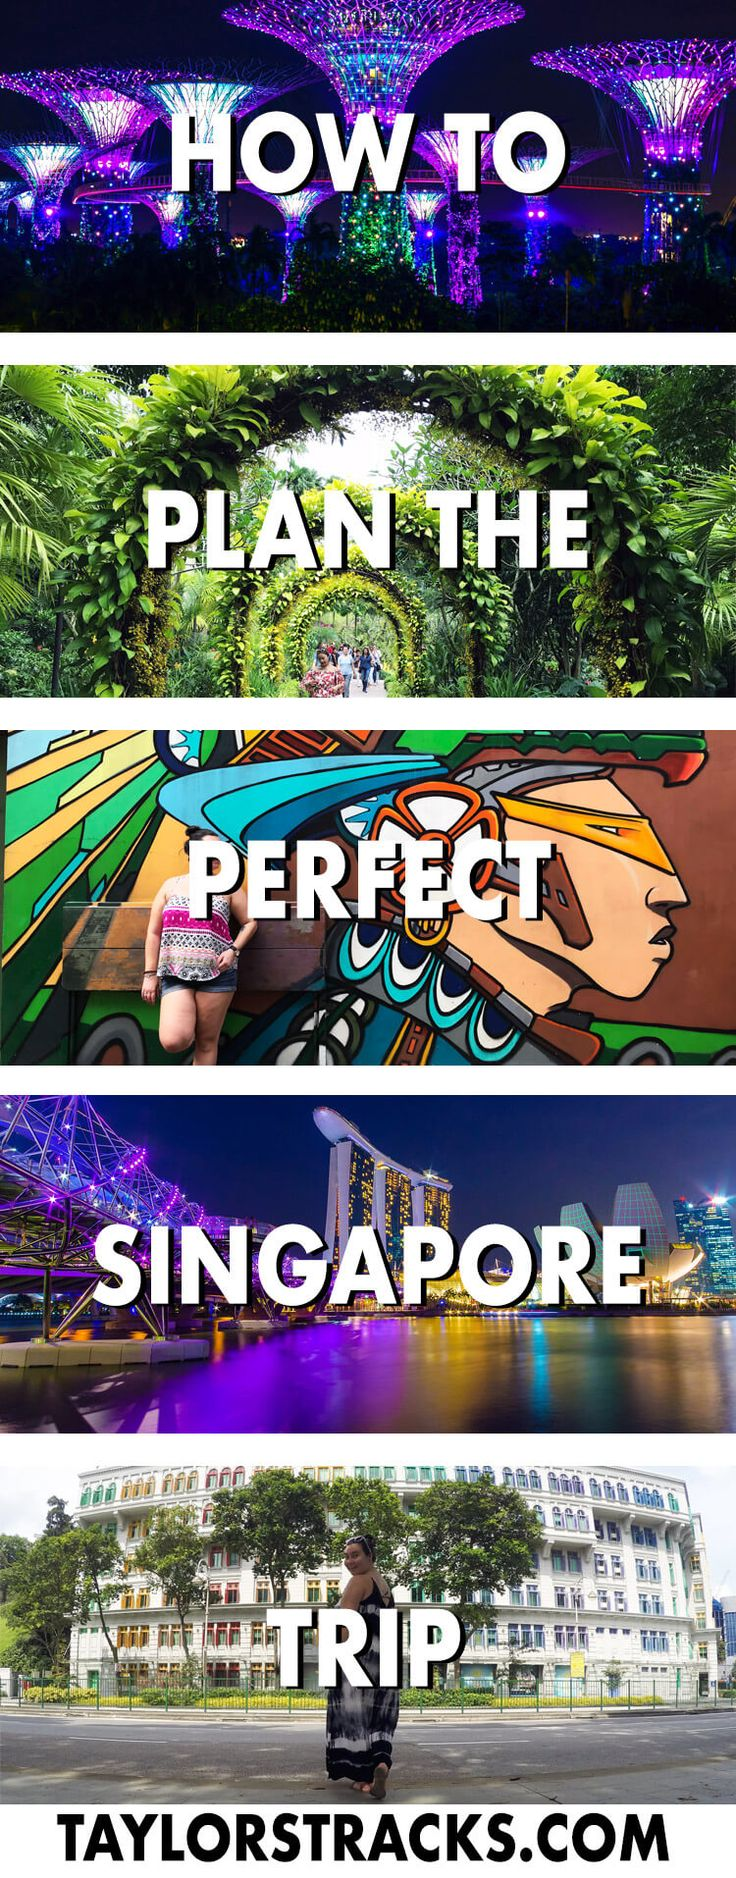 Have people told you not to visit Singapore? Ignore them! Singapore is amazing and is a must visit destinations. Click to find a detailed guide to help you plan your trip! #singapore ***** Singapore travel | Singapore itinerary | Singapore travel places | Singapore tips | Things to do in Singapore | Marina Bay | Gardens by the Bay | Botanic Gardens Singapore | Singapore travel places | Singapore travel hotels